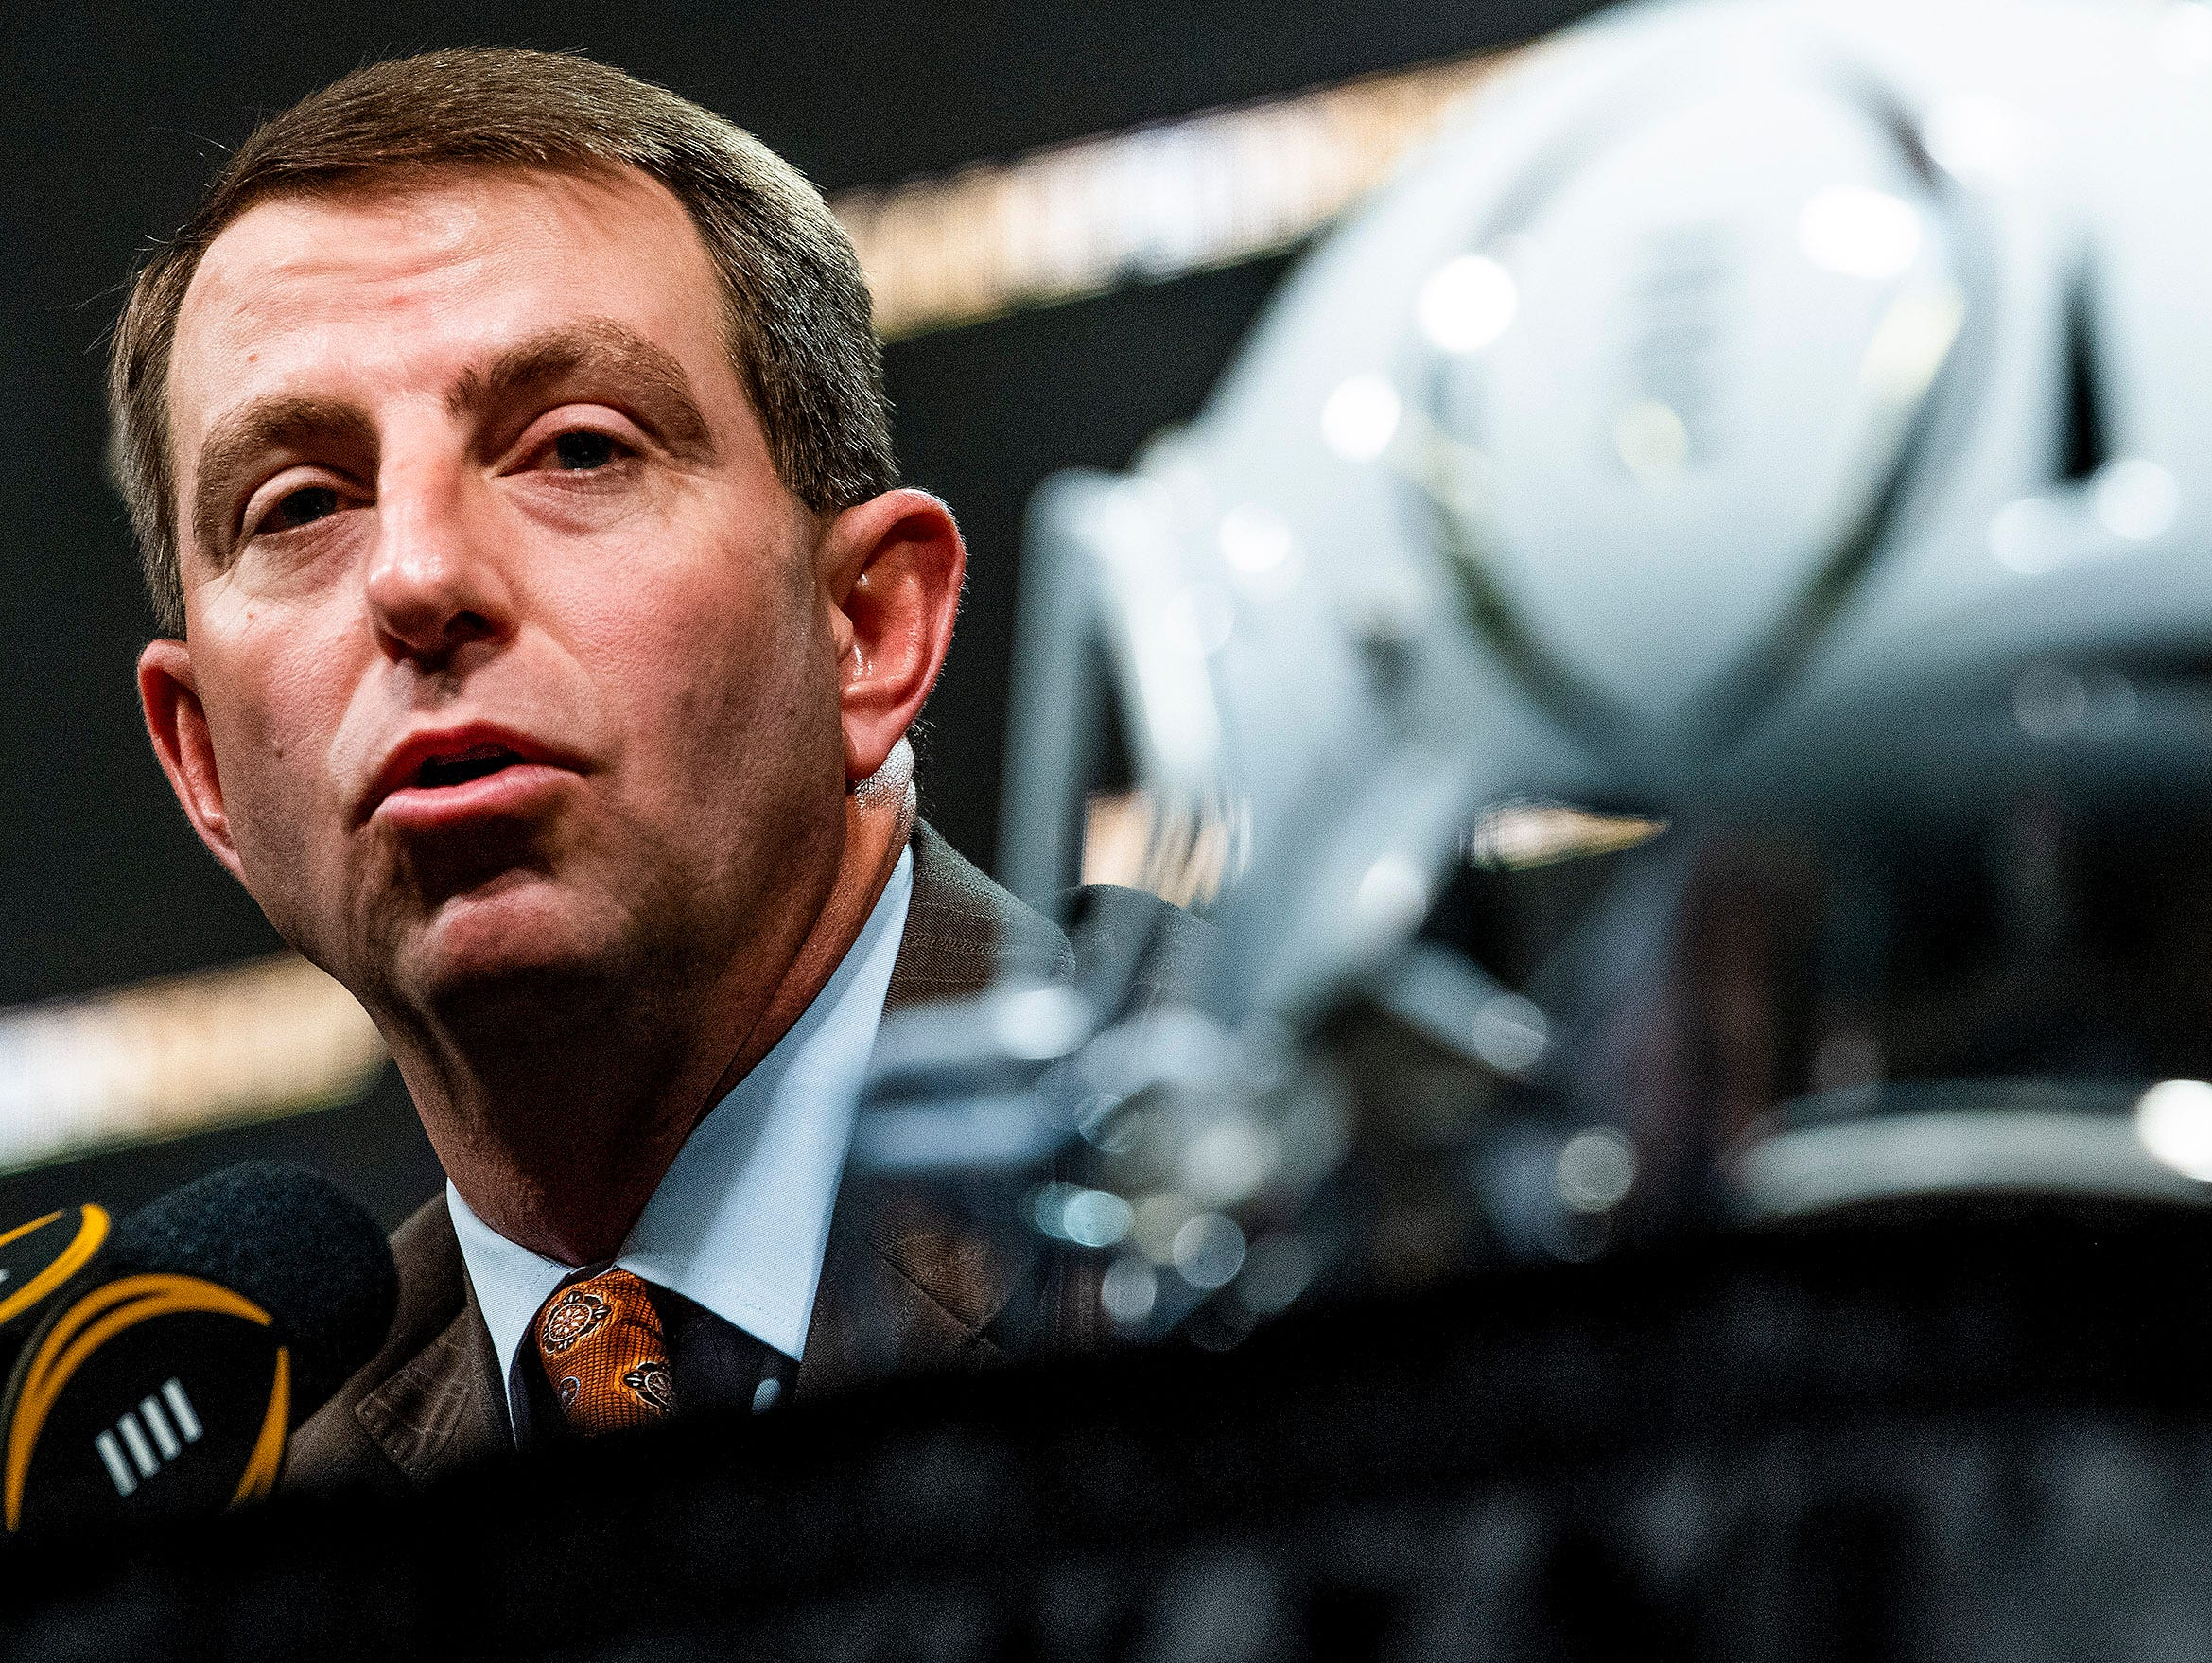 Clemson head coach Dabo Swinney speaks during the College Football National Championship coaches press conference in San Jose, Ca., on Sunday January 6, 2019.